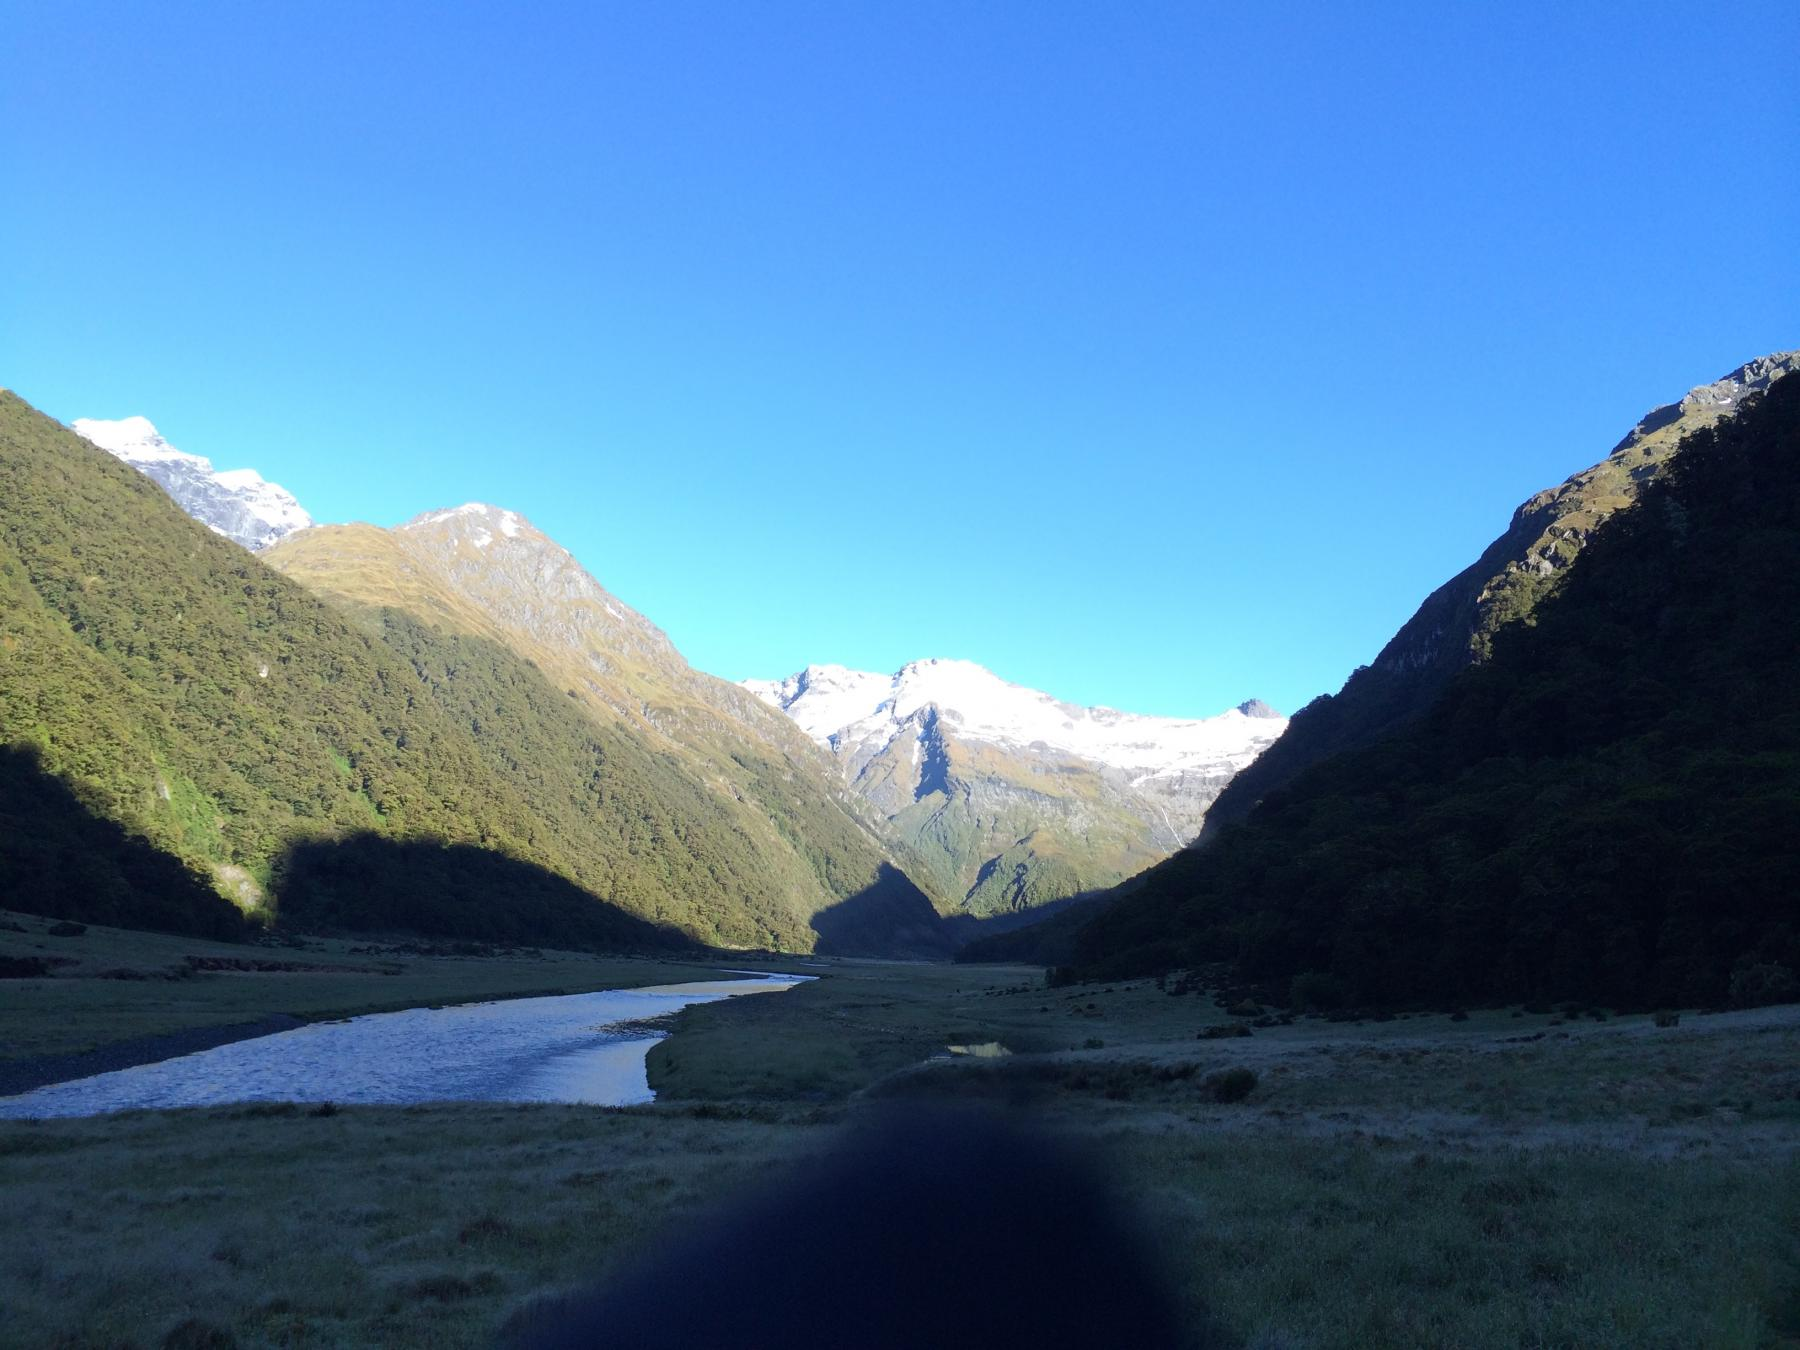 Mount Aspiring National Park: Gillespie Pass Trek starting at Wanaka, Otago, New Zealand